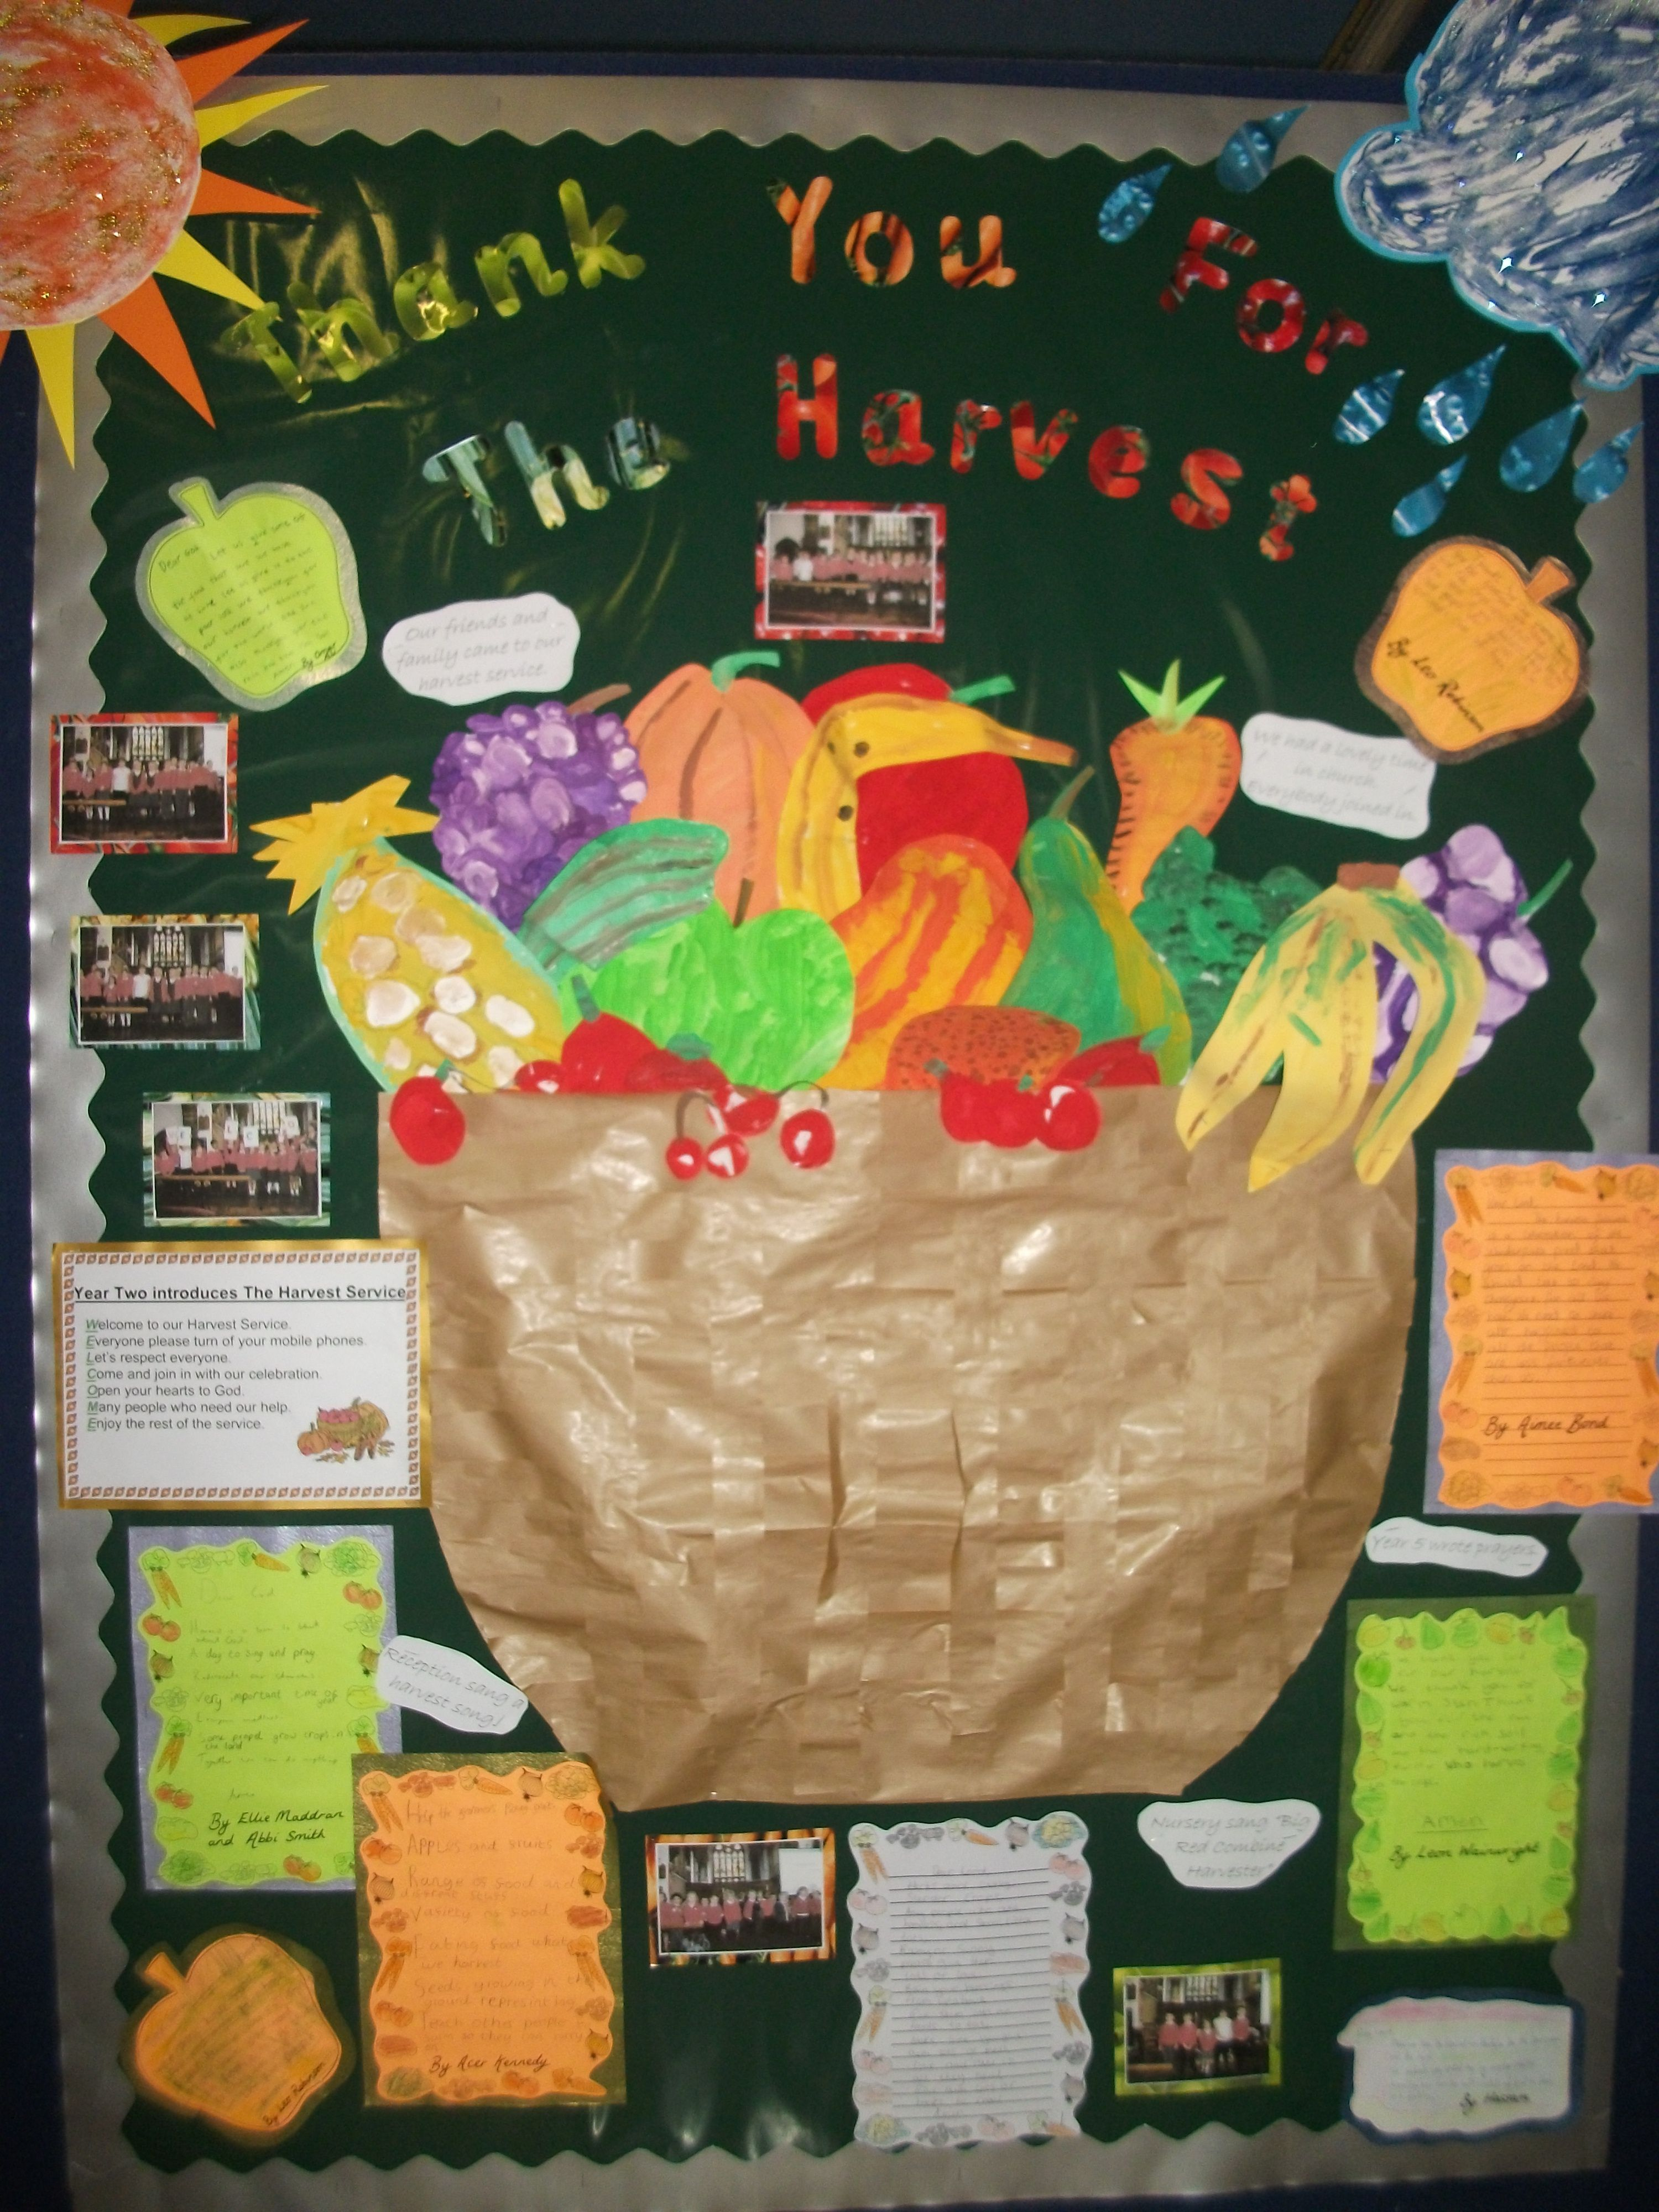 Why Use A Notice Board When You Can Use A Screen A Fabulous Idea From Christ Church Using One